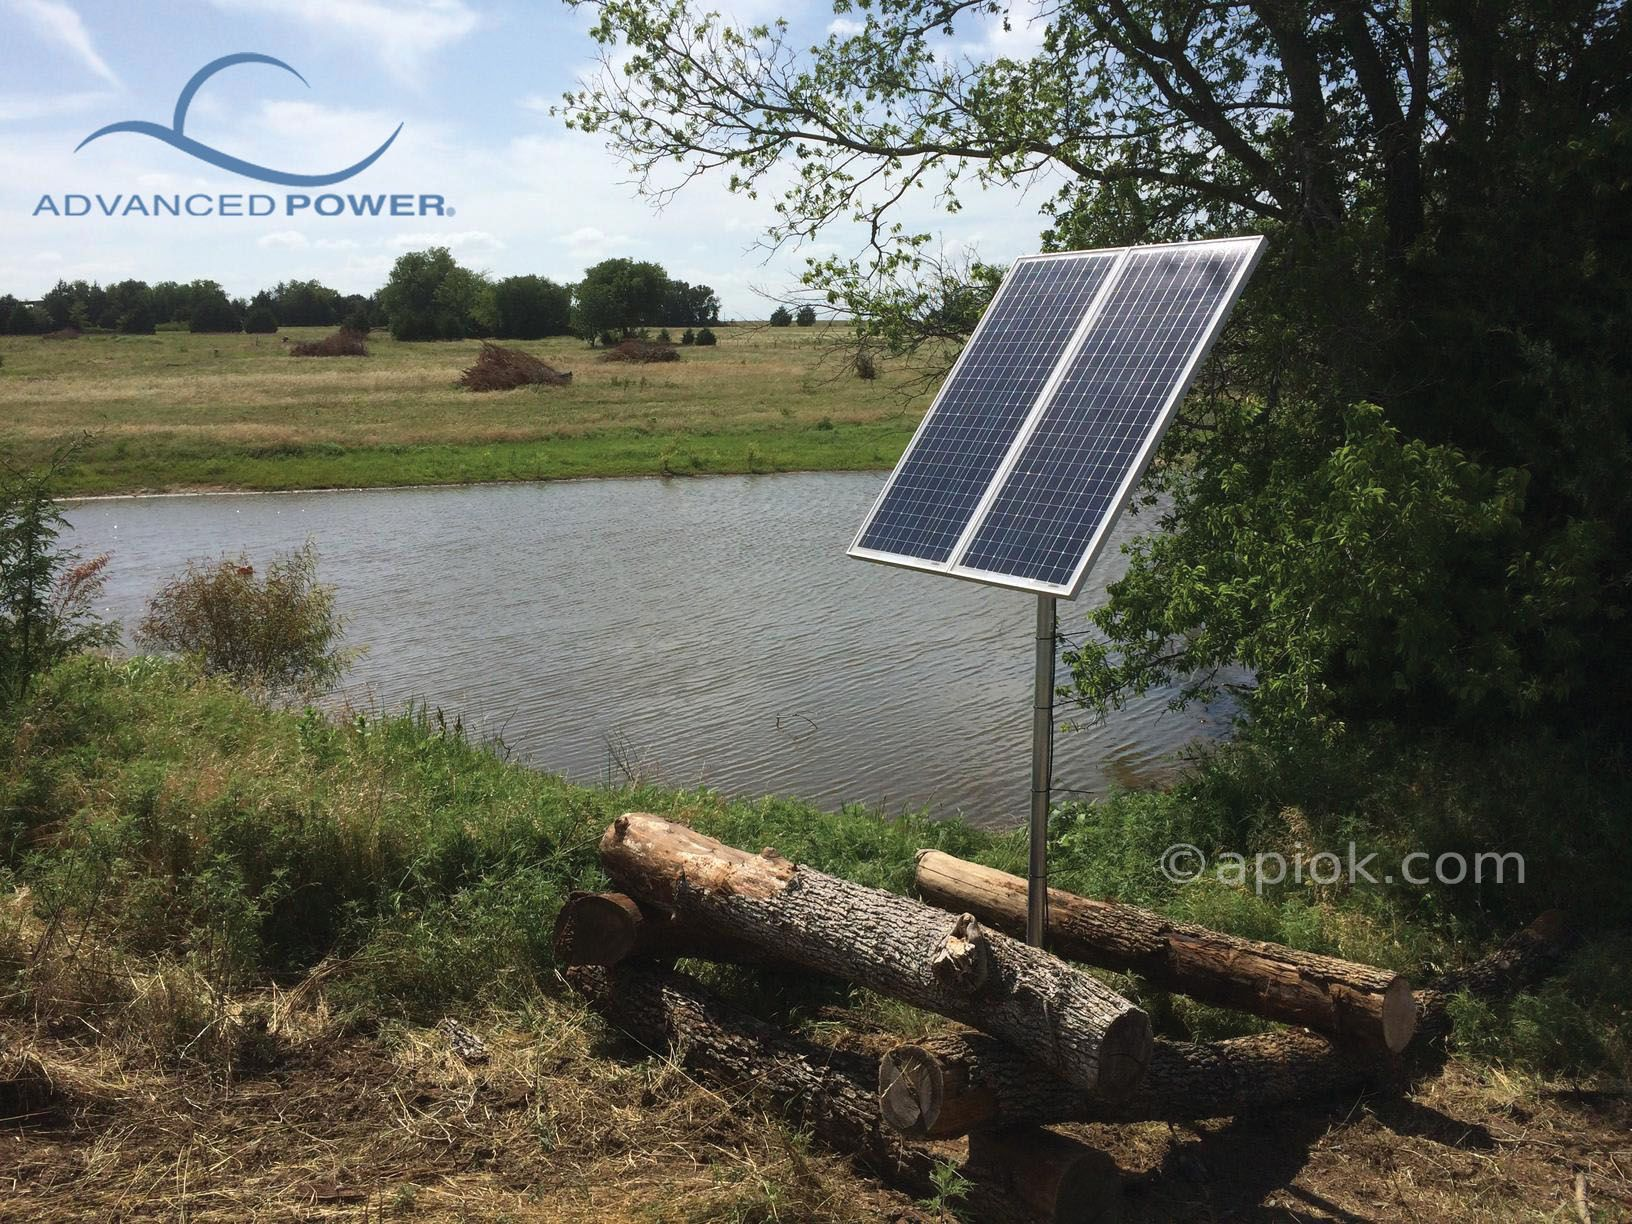 7 14 14 Ardmore Ok This Is Advanced Power Inc S Two Panel K170 Watt Solar Water Pump System Filling A Pond In Oklaho Solar Water Pump Buy Solar Panels Solar